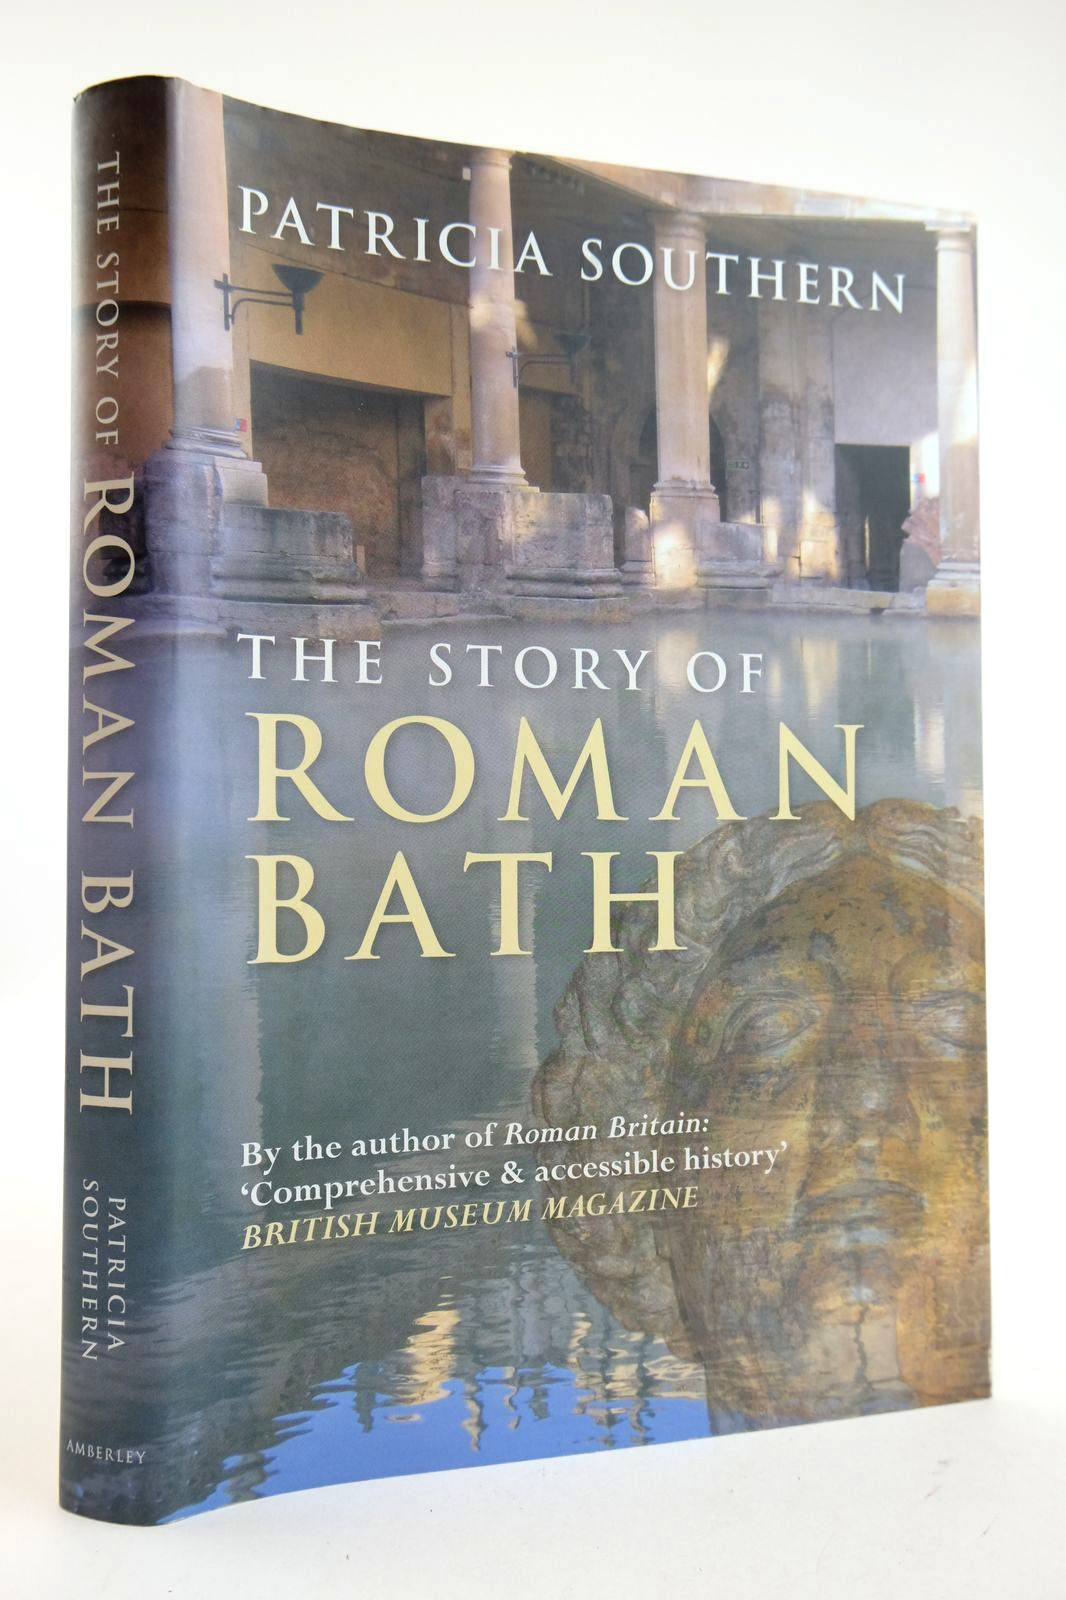 Photo of THE STORY OF ROMAN BATH written by Southern, Patricia published by Amberley (STOCK CODE: 2132590)  for sale by Stella & Rose's Books